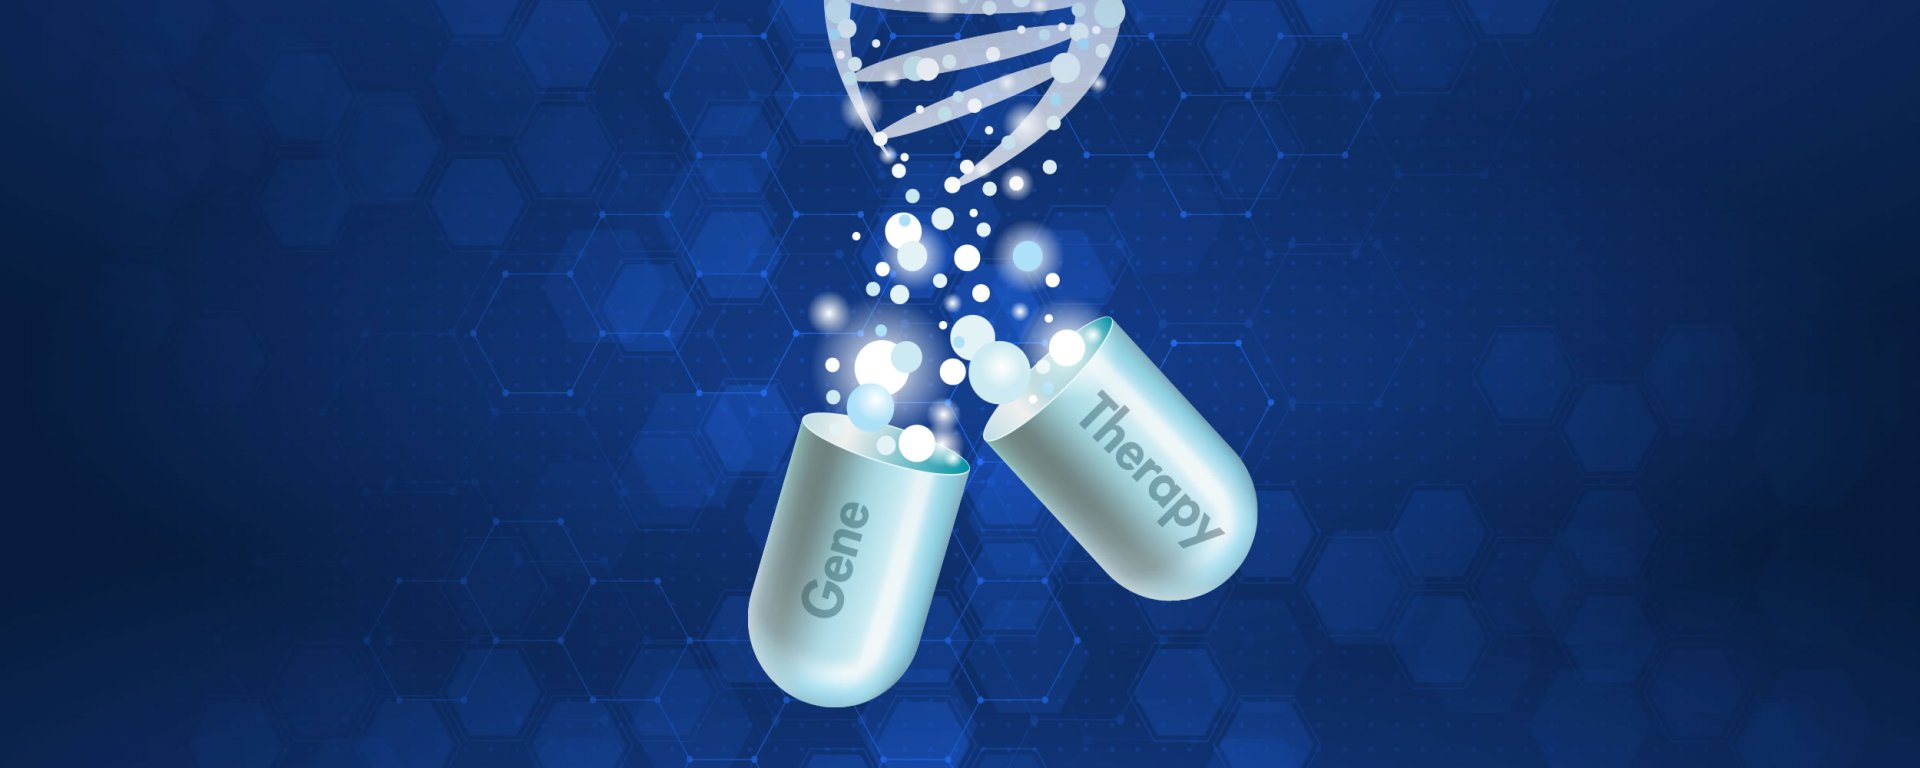 Key Considerations for Gene Therapy Commercialization - Cell Culture Dish